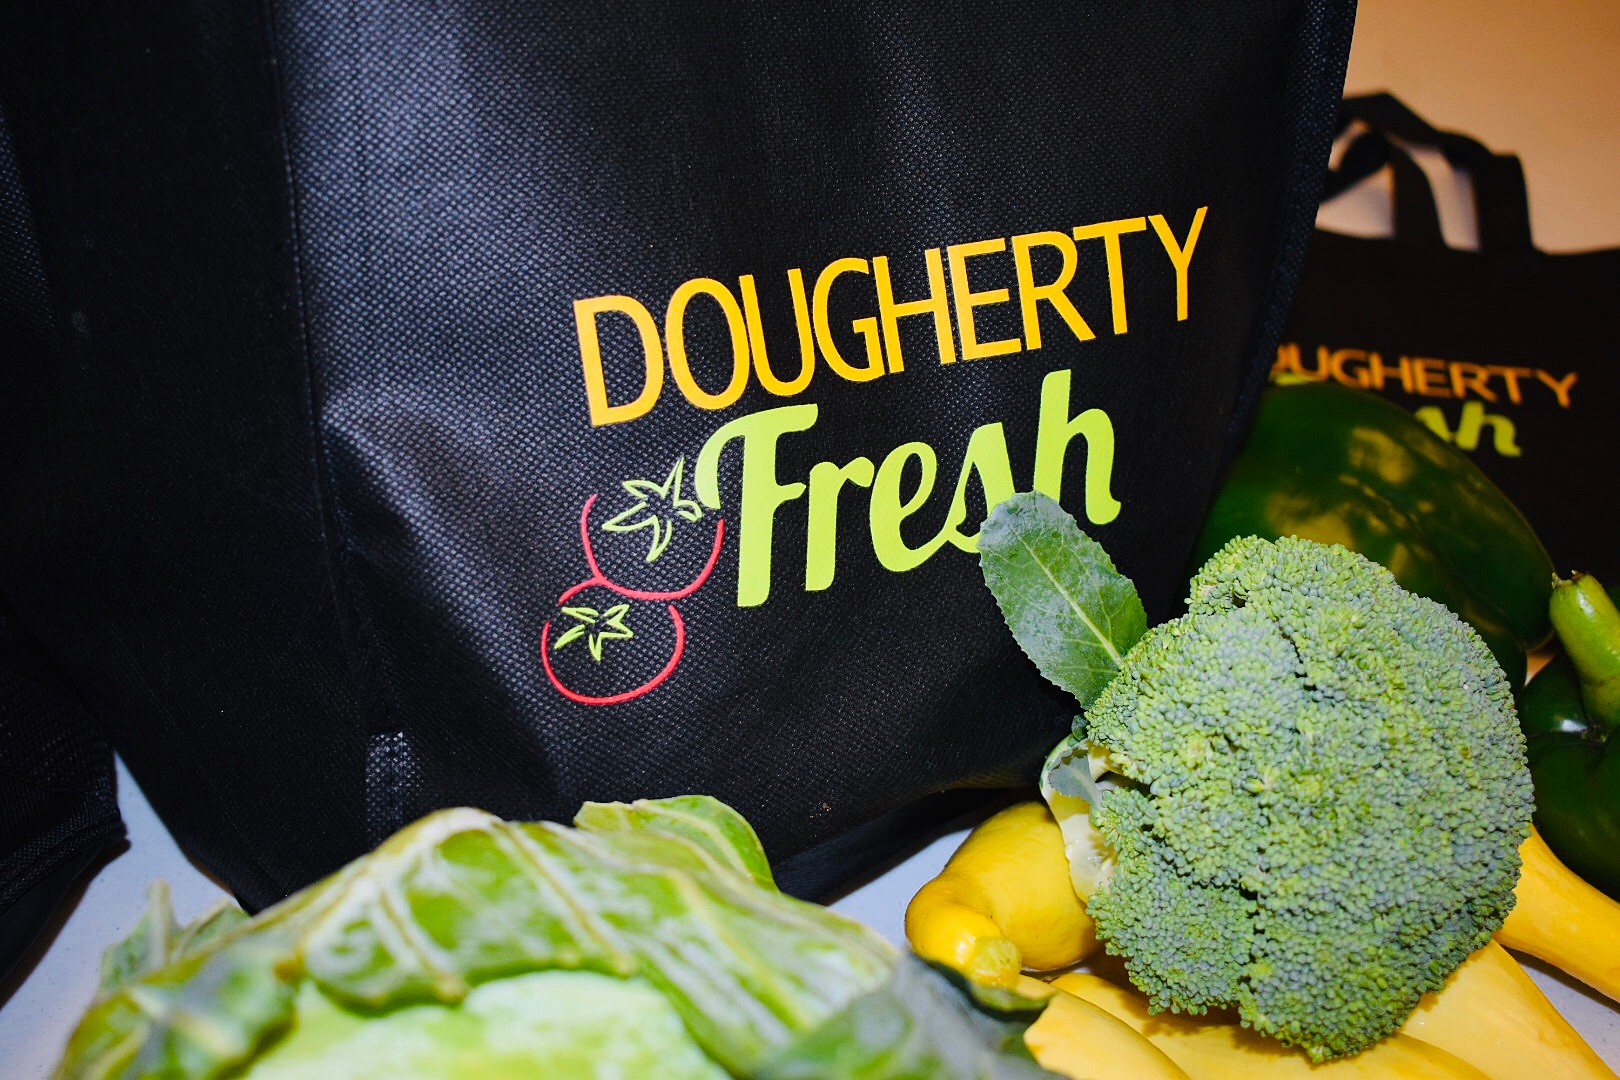 Dougherty Fresh Bag with select produce